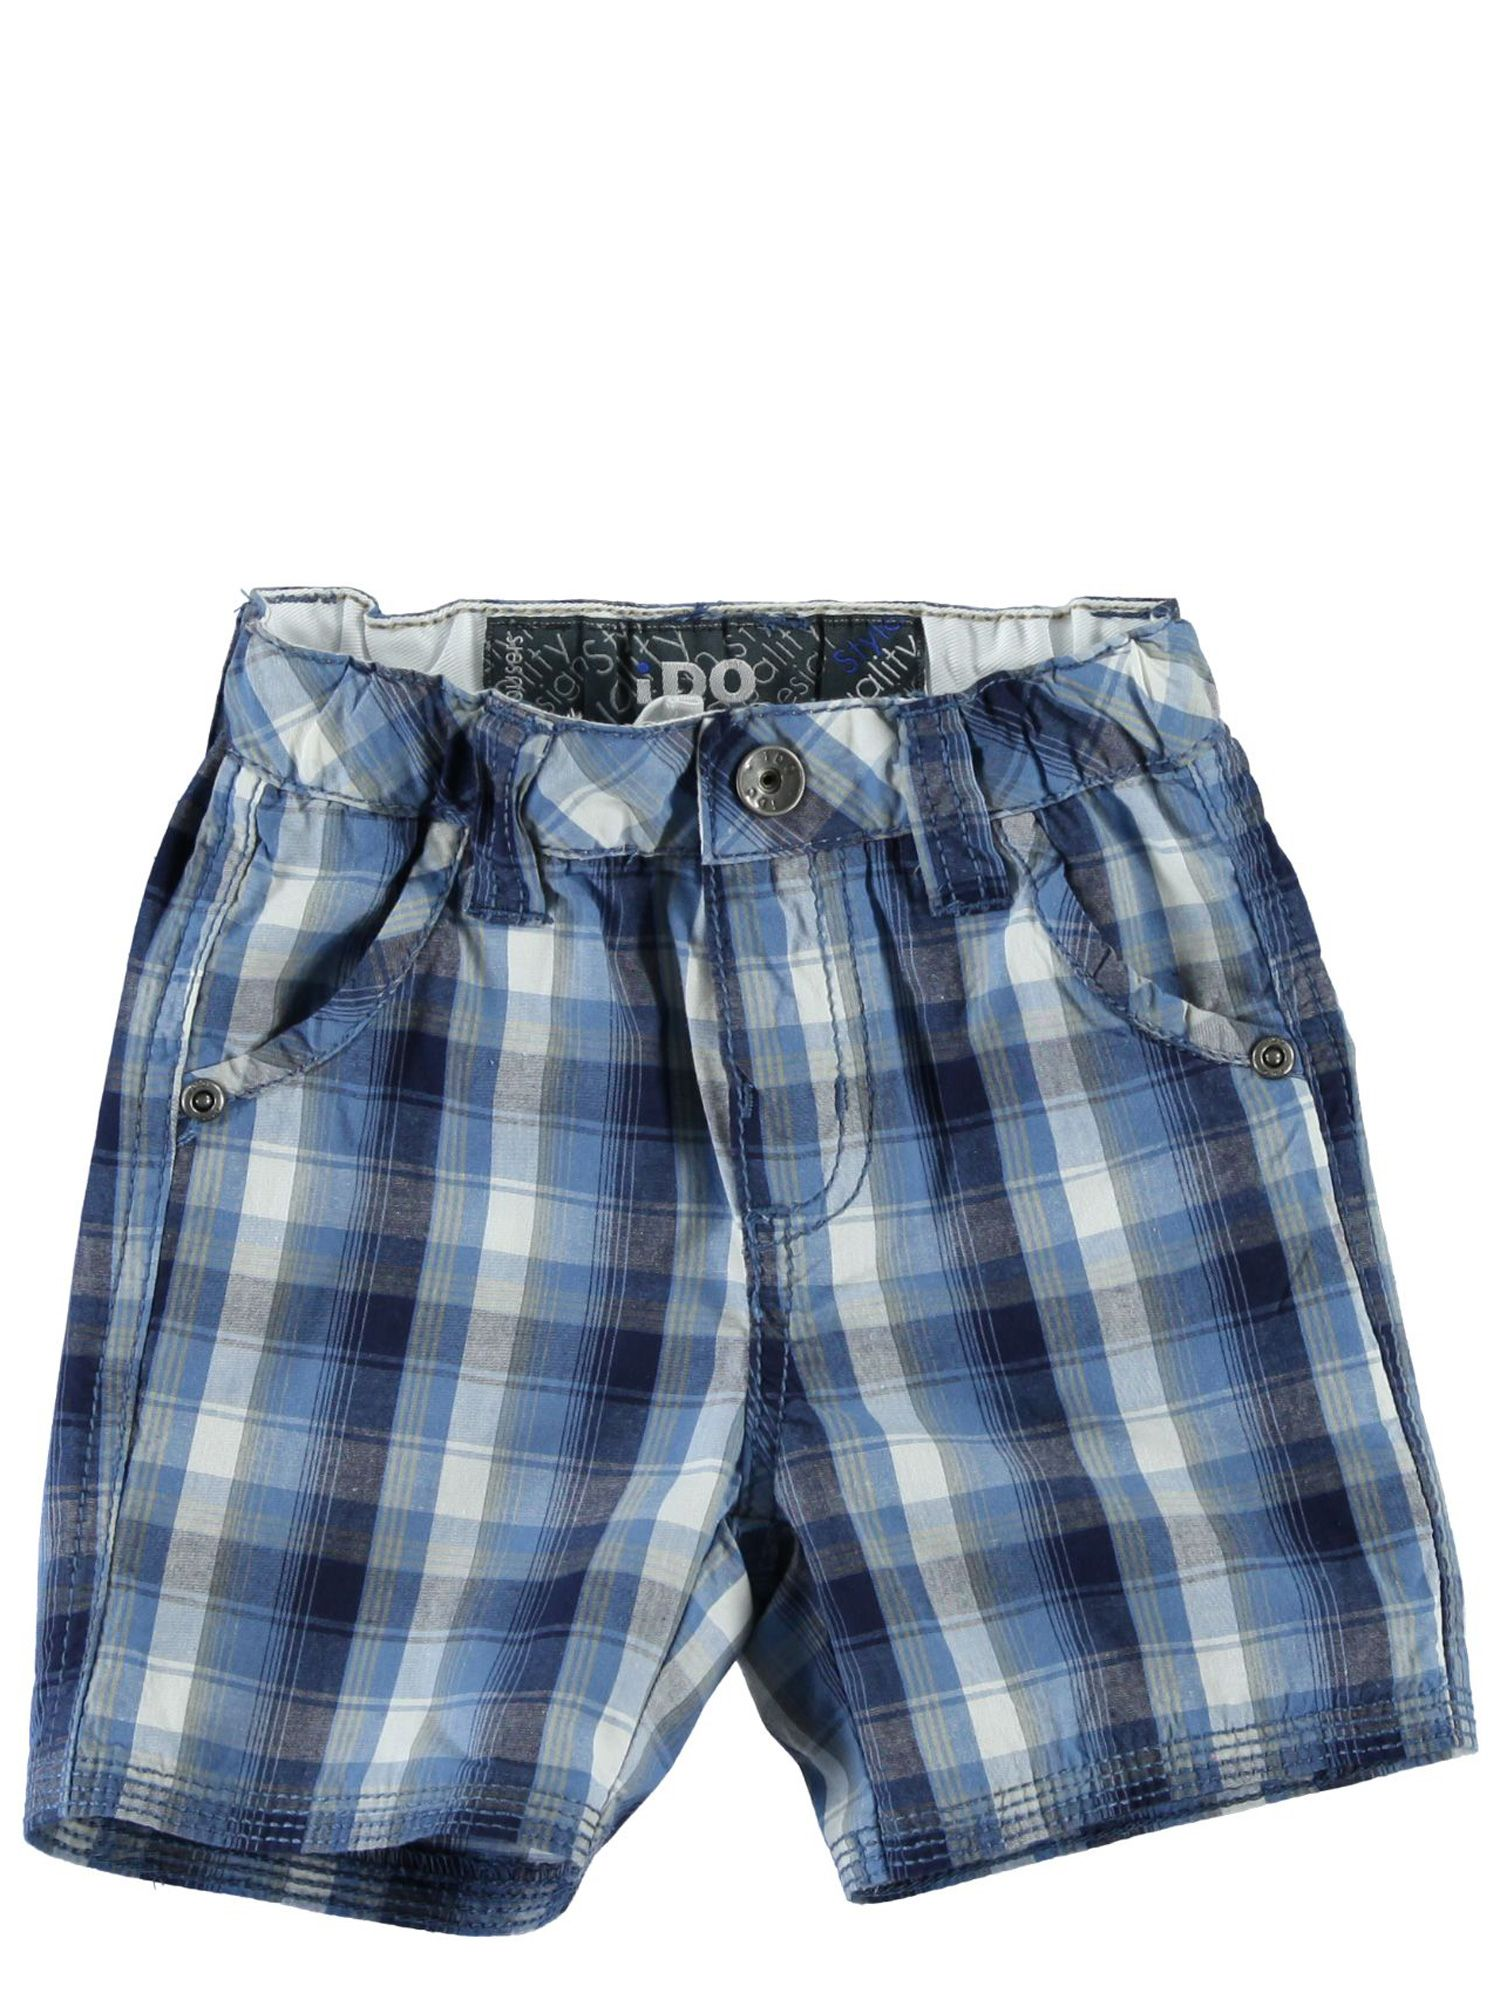 Boys checked printed bermuda shorts